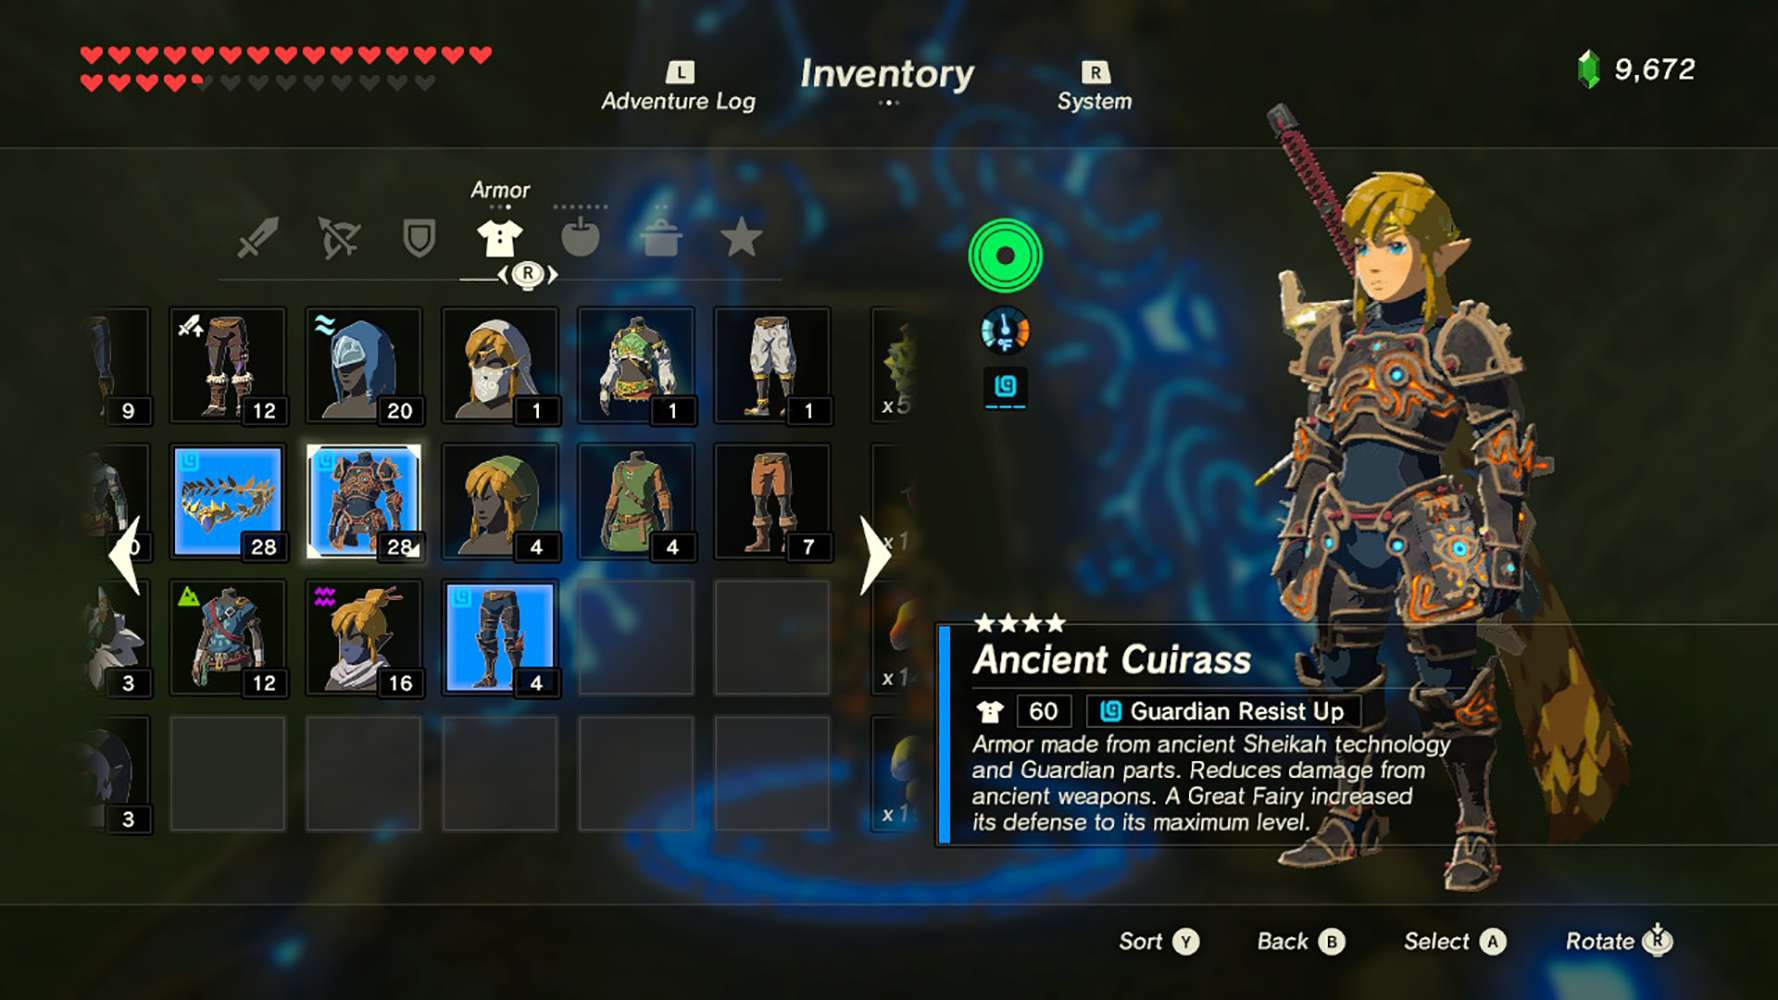 Screenshot of the Breath of the Wild inventor showing ancient armor